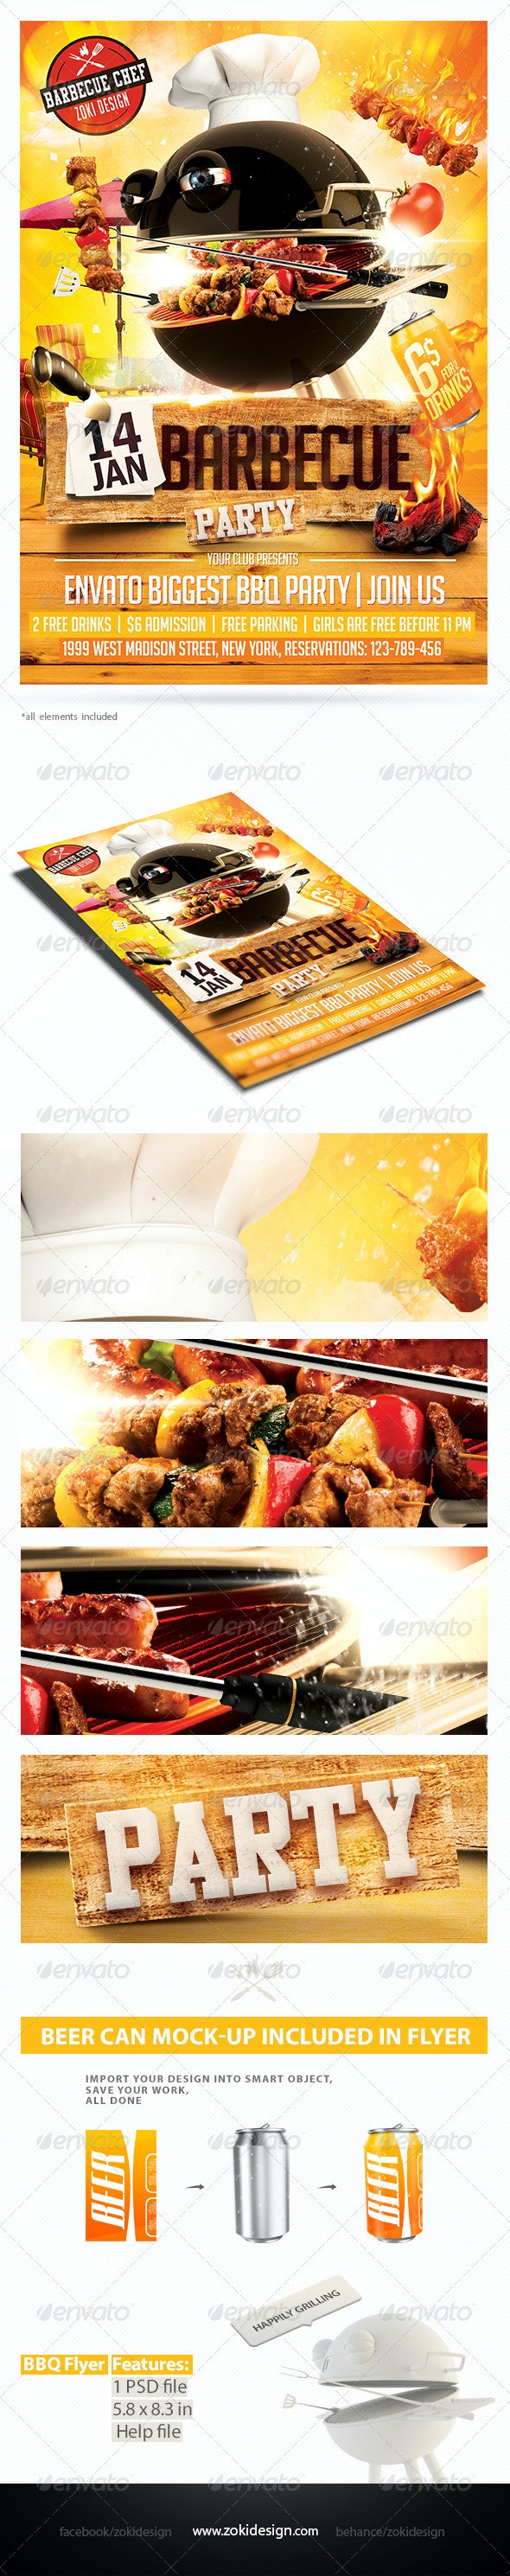 Barbecue Party Flyer - Clubs & Parties Events